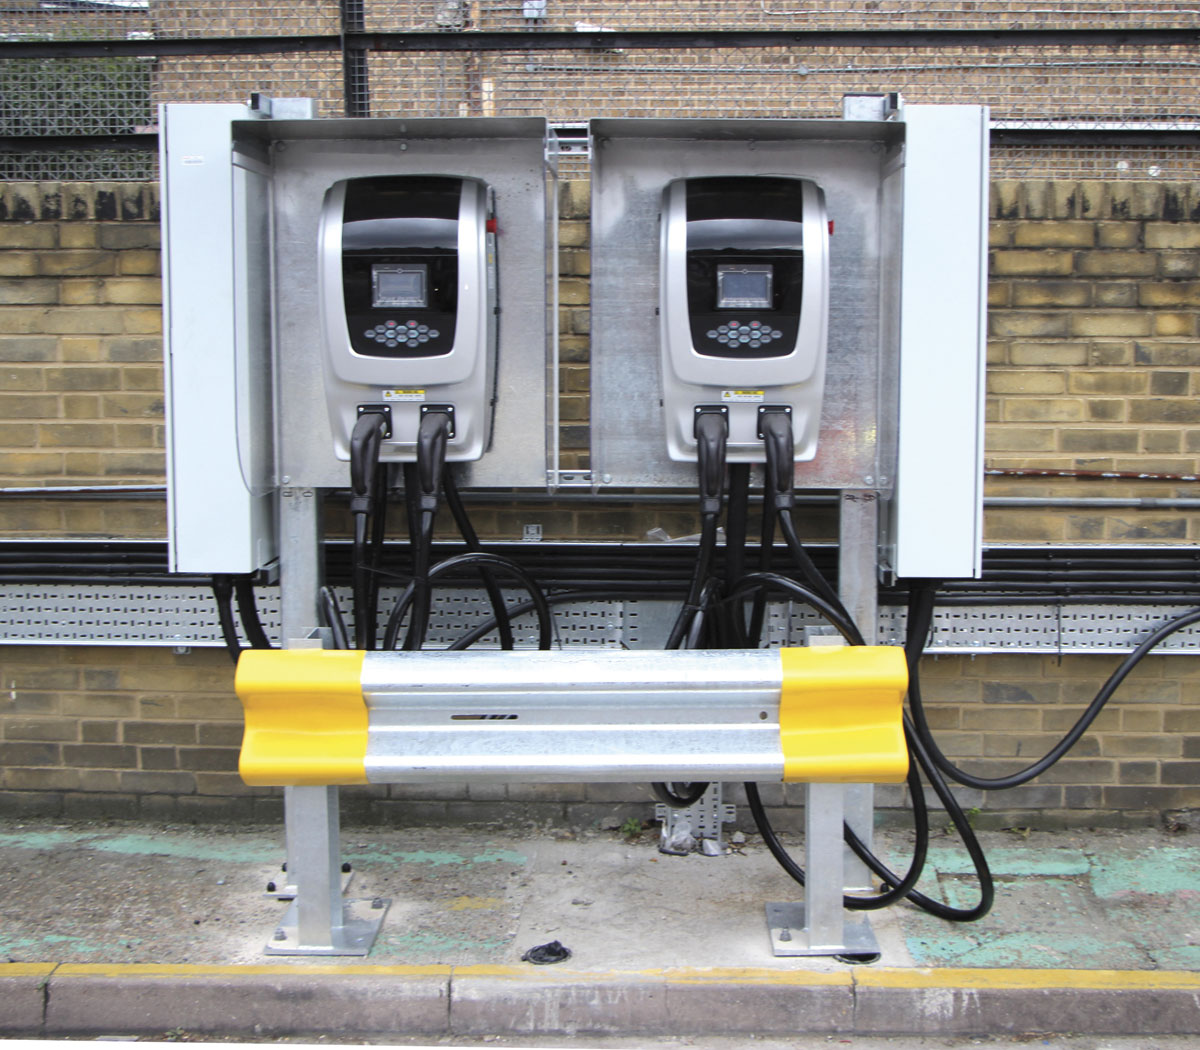 43 of these charging stations have been supplied by BYD and installed at Go-Ahead's Waterloo garage - inset